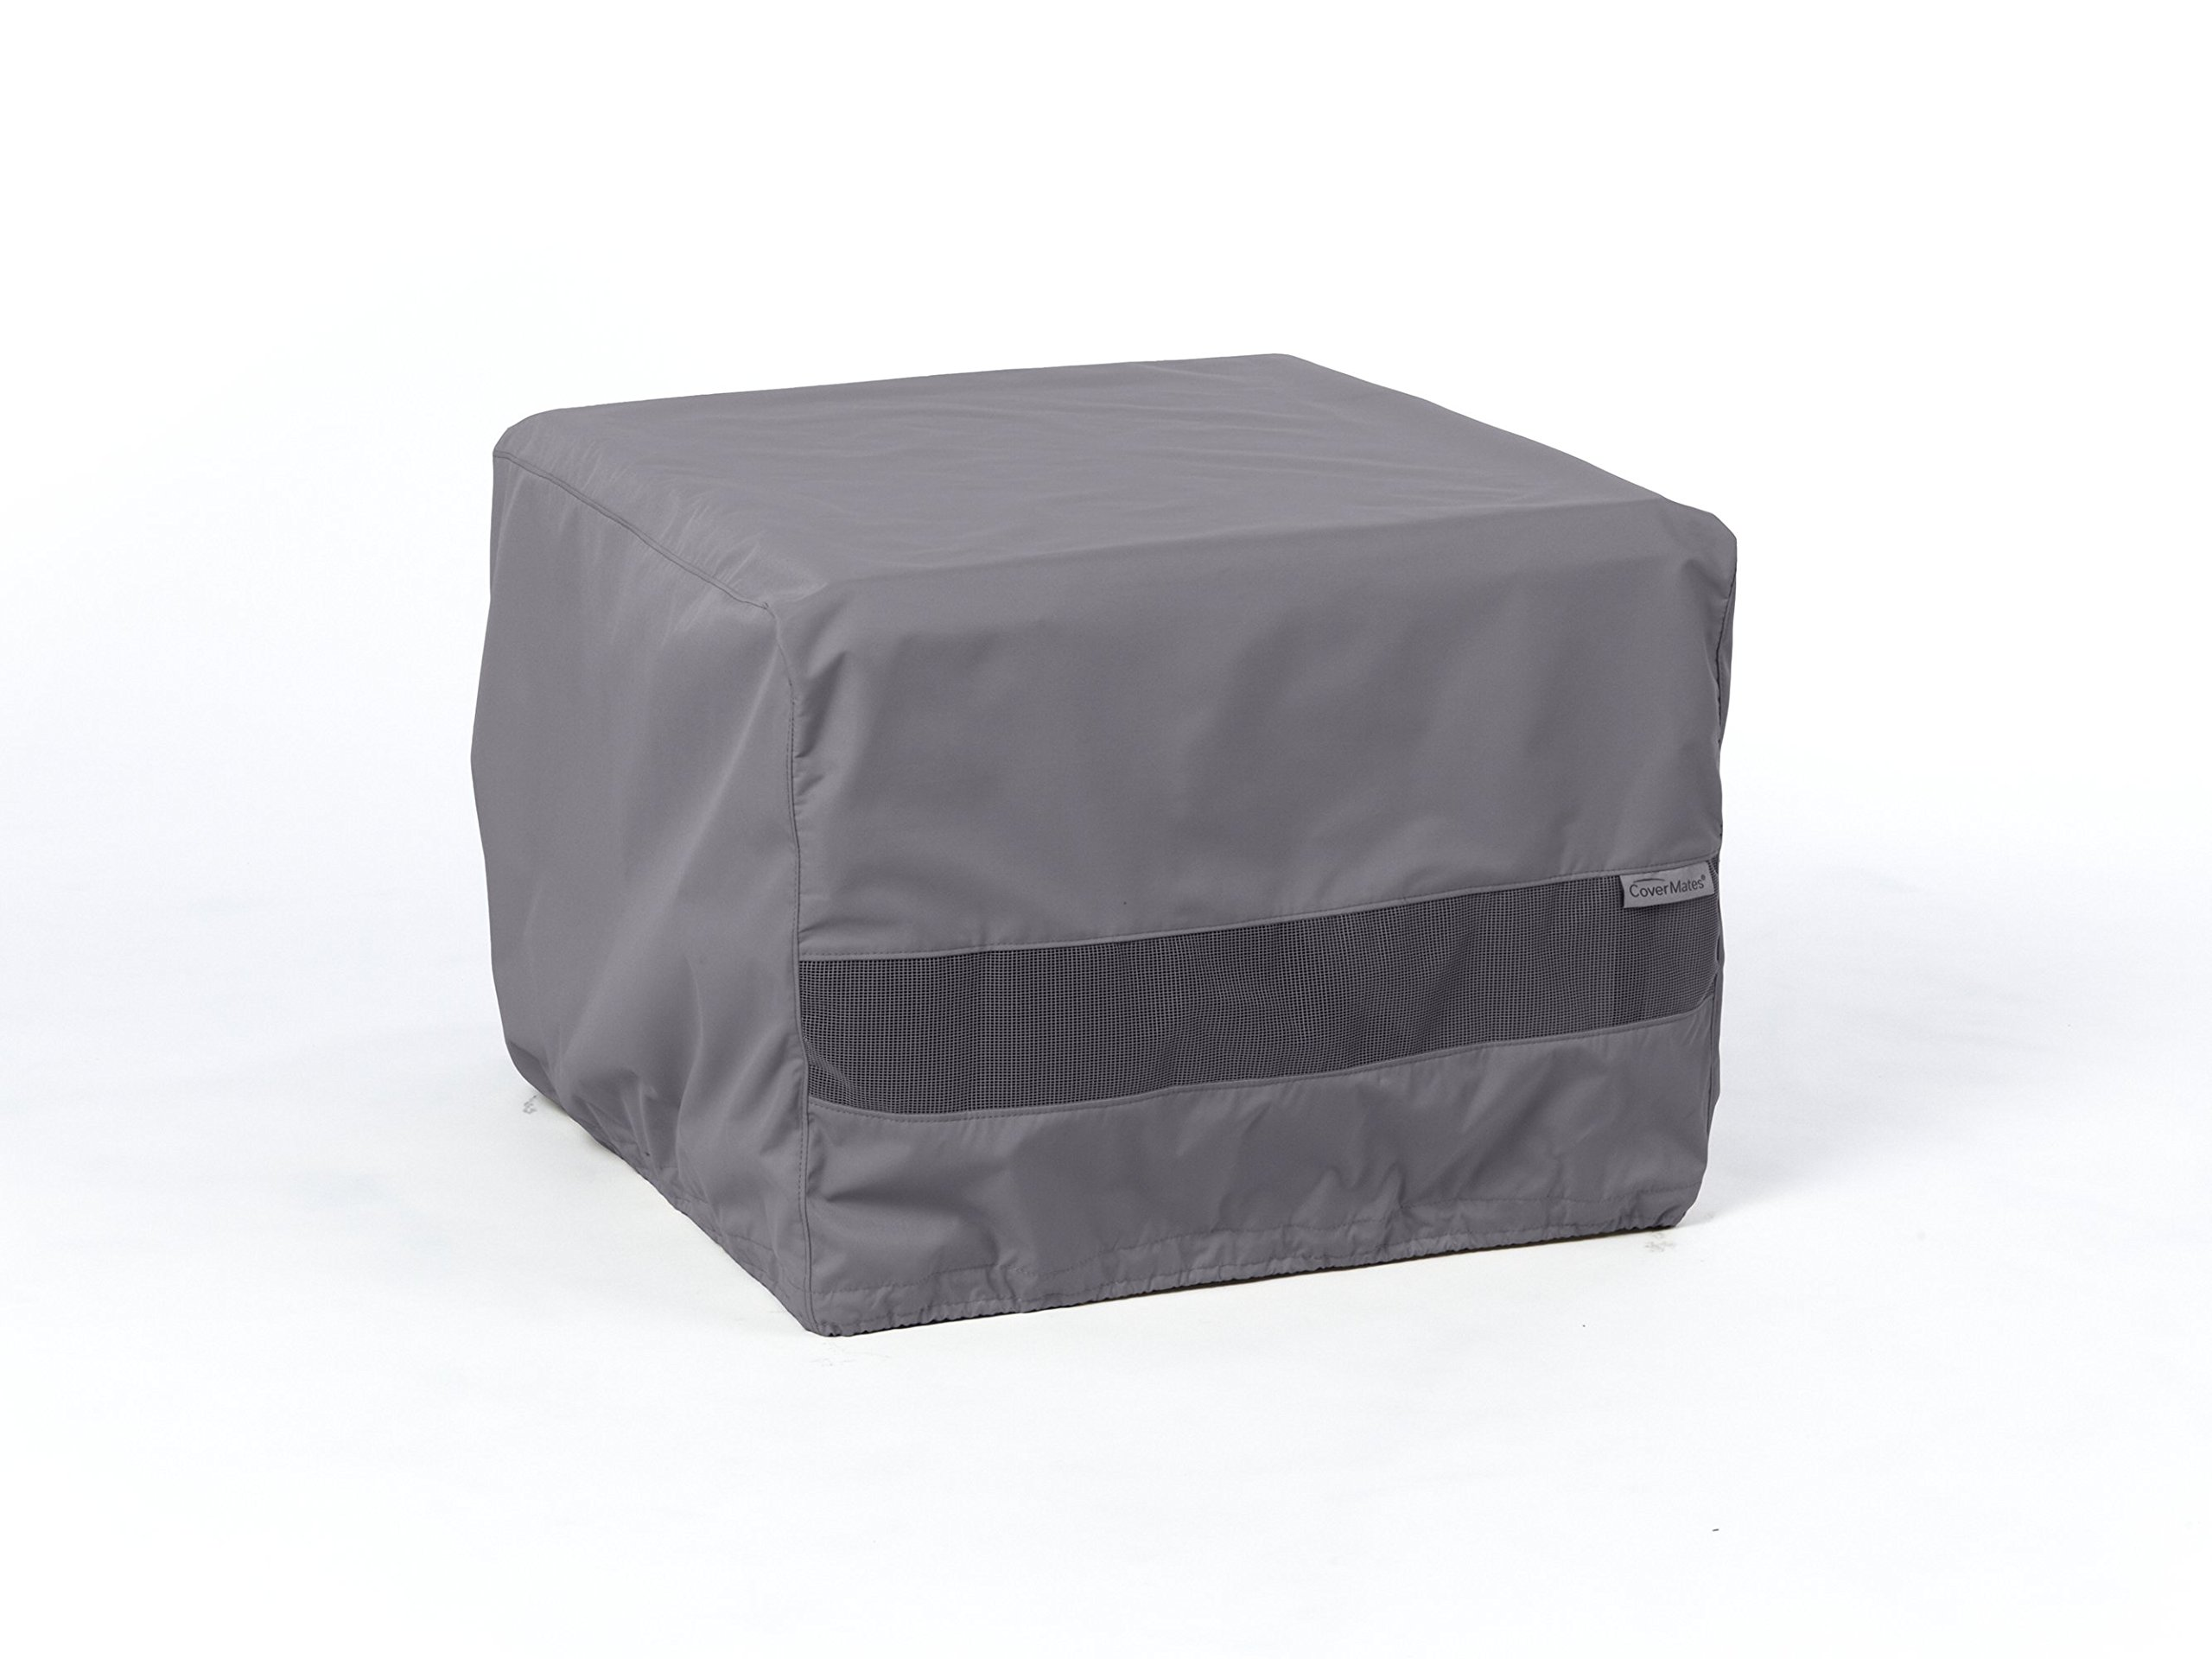 Covermates - Square Ottoman Cover - 18W x 18D x 18H - Elite - 300D Stock-Dyed Polyester - Double Stitched Seams - Buckle Straps - 3 YR Warranty - Weather Resistant - Charcoal by Covermates